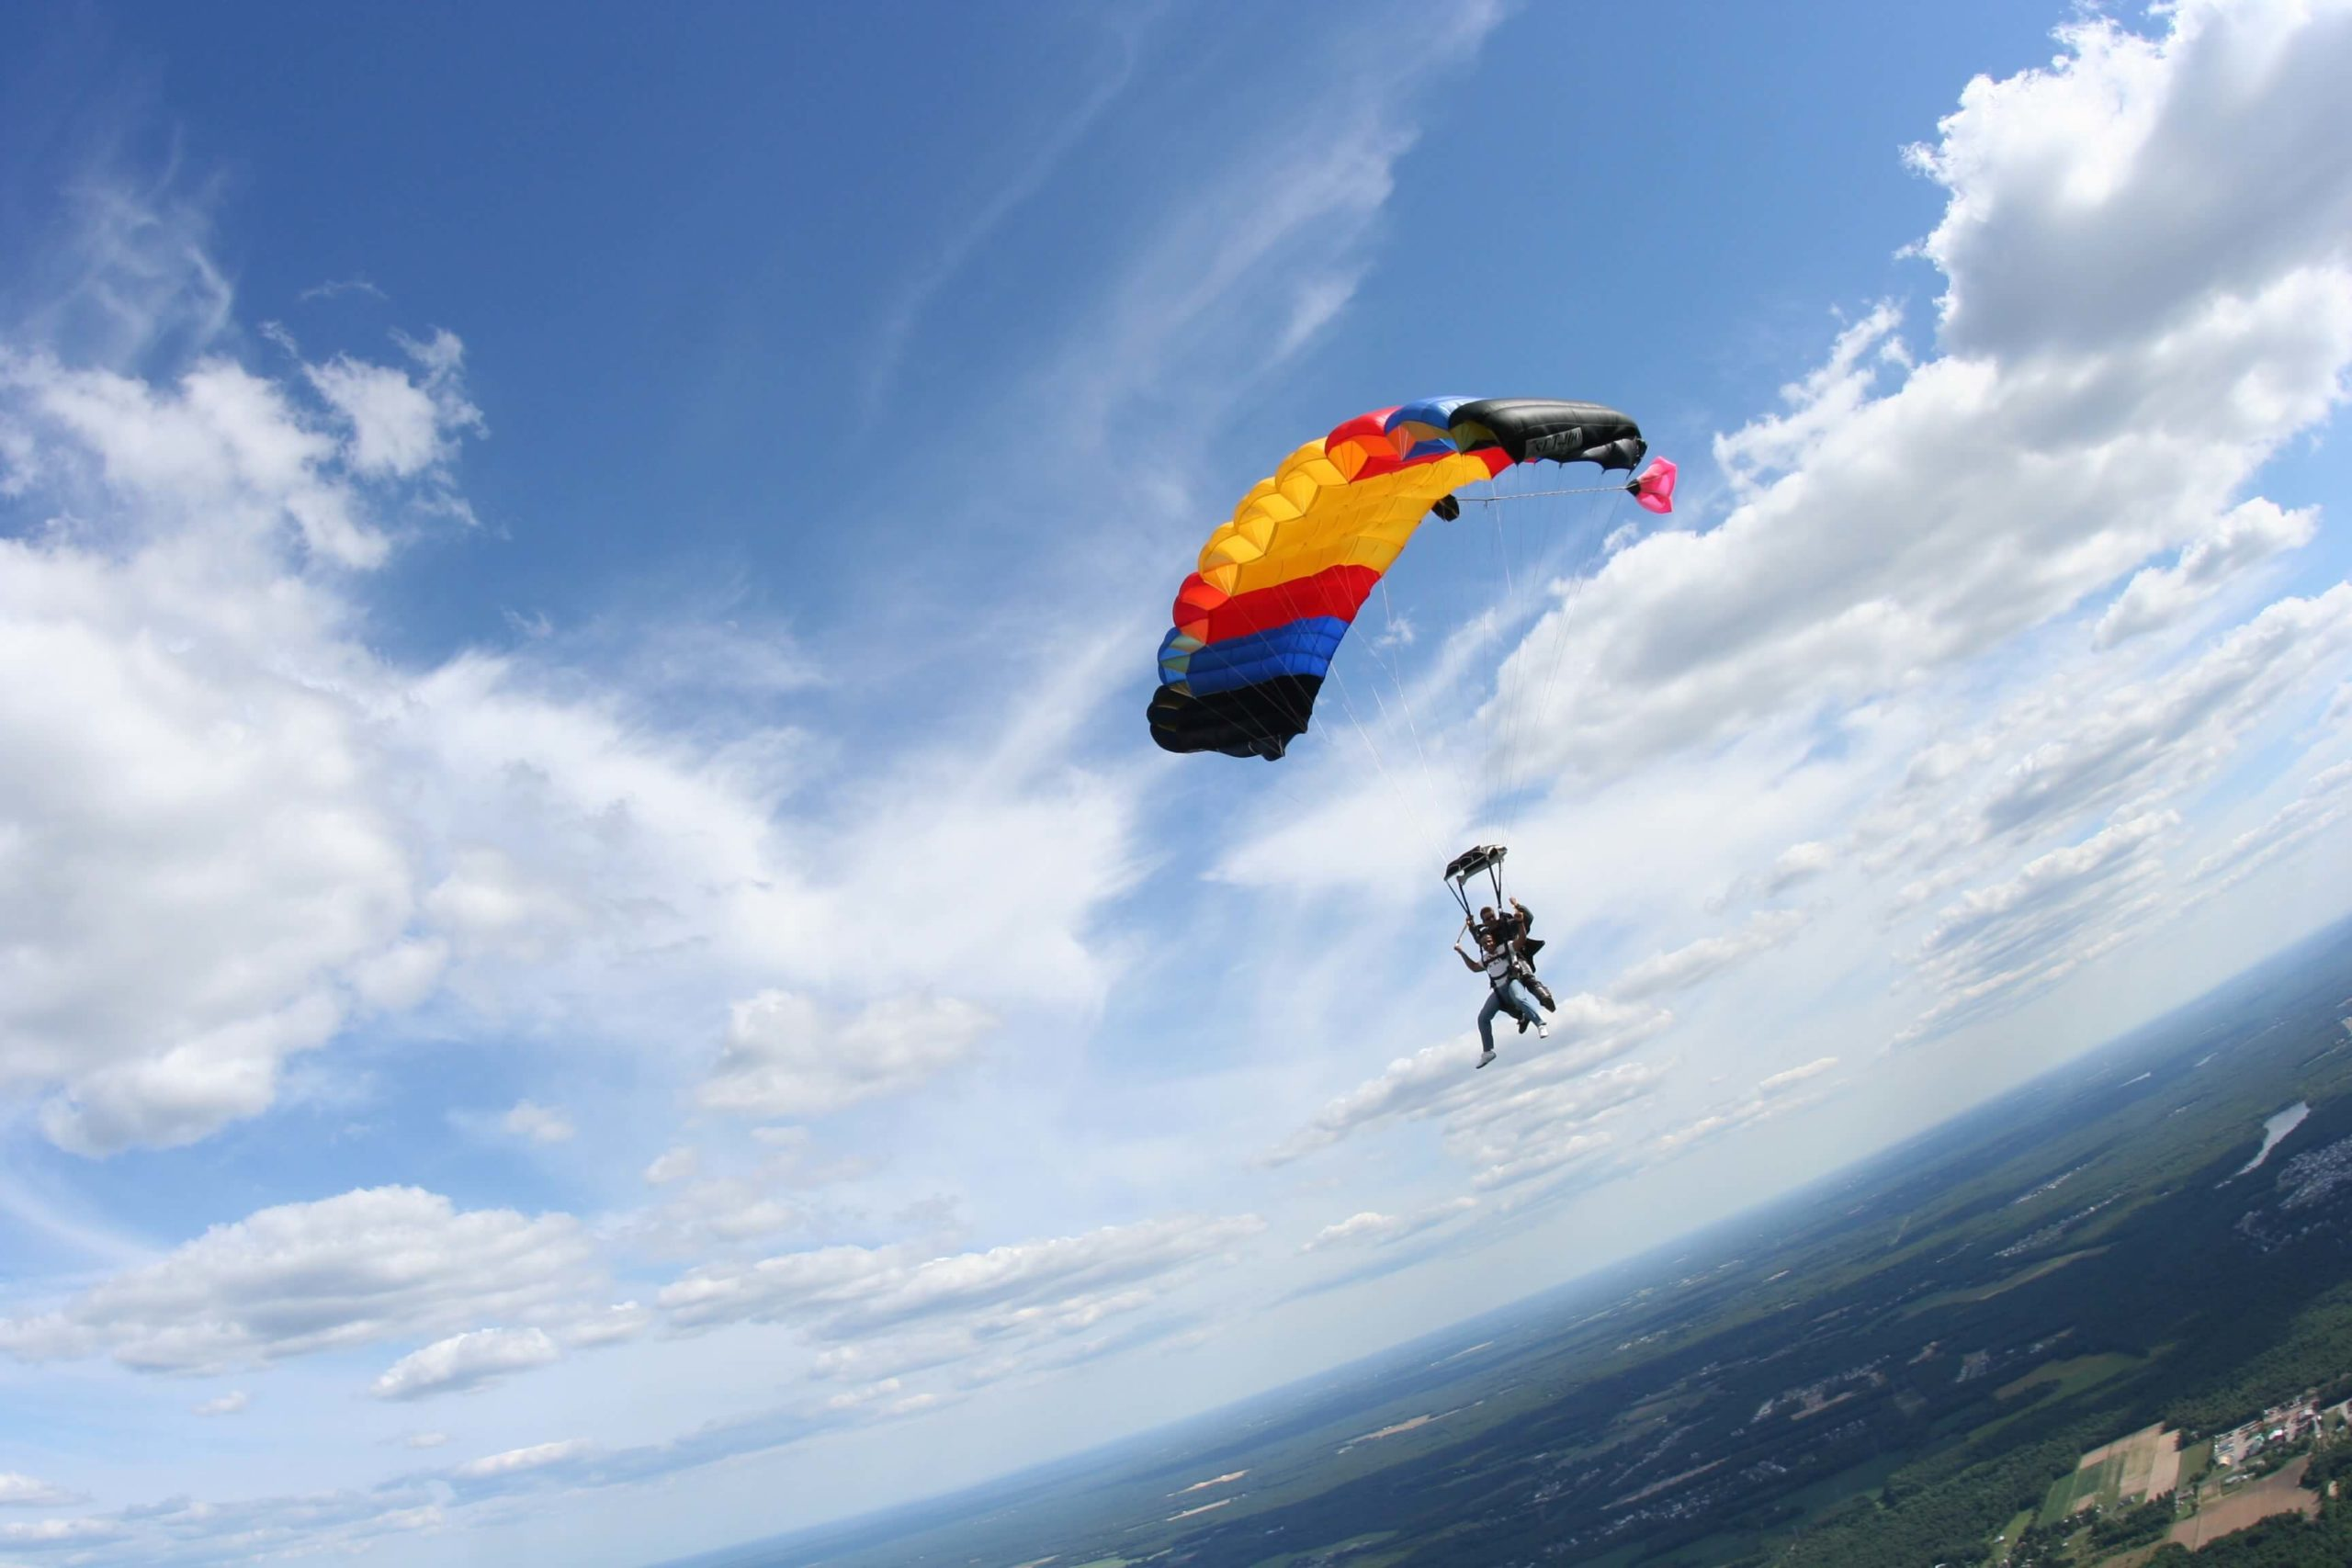 Tandem skydivers glide with the parachute.